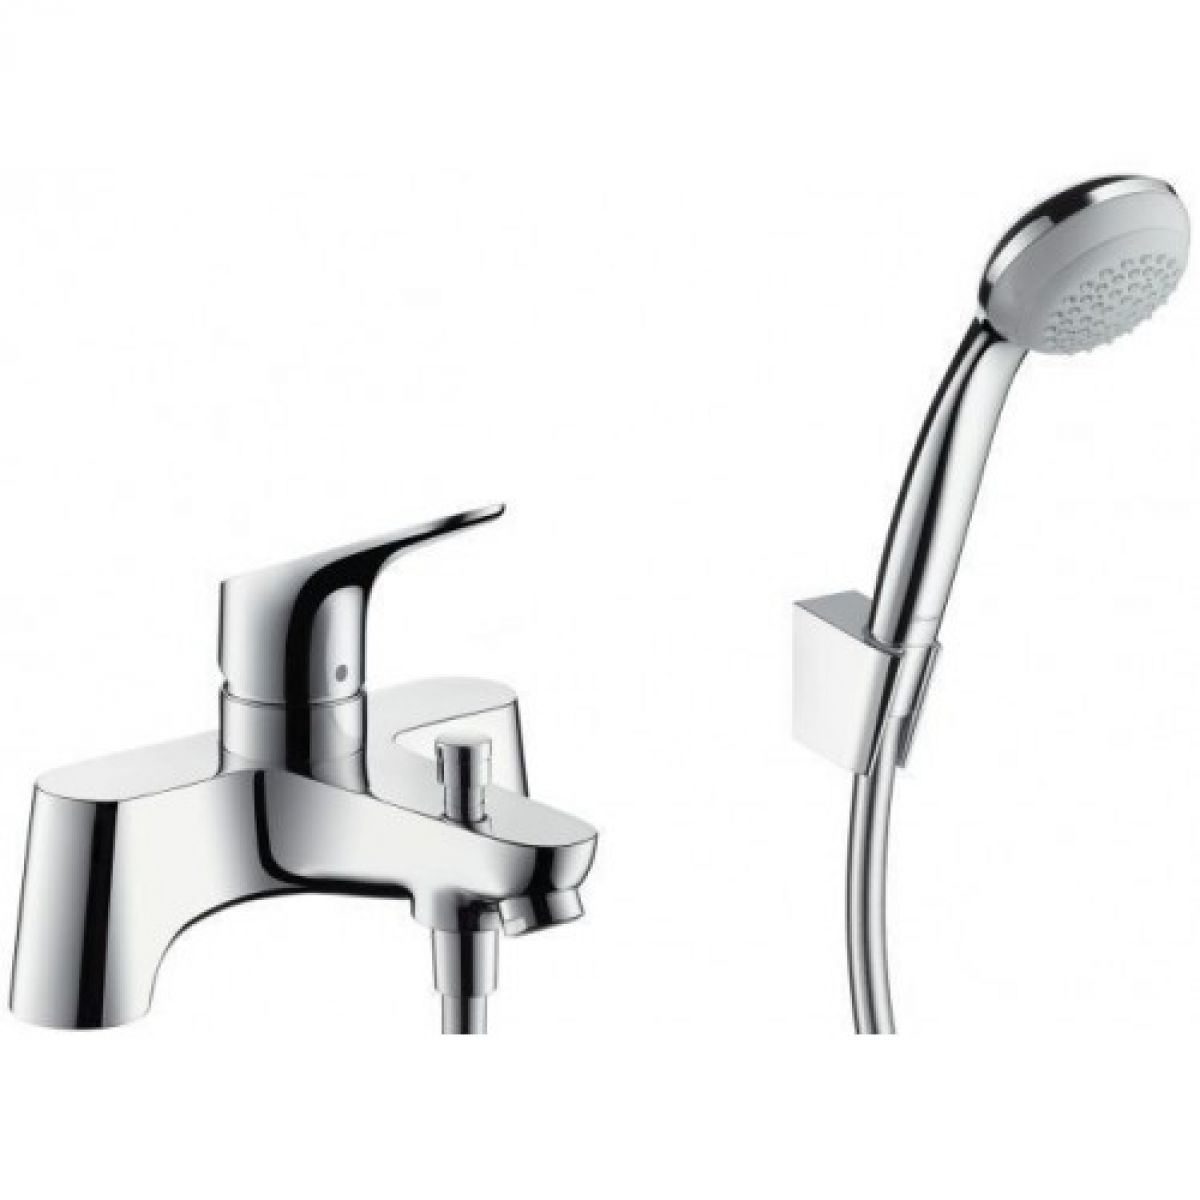 Hansgrohe Focus Bath Shower Mixer Tap Uk Bathrooms